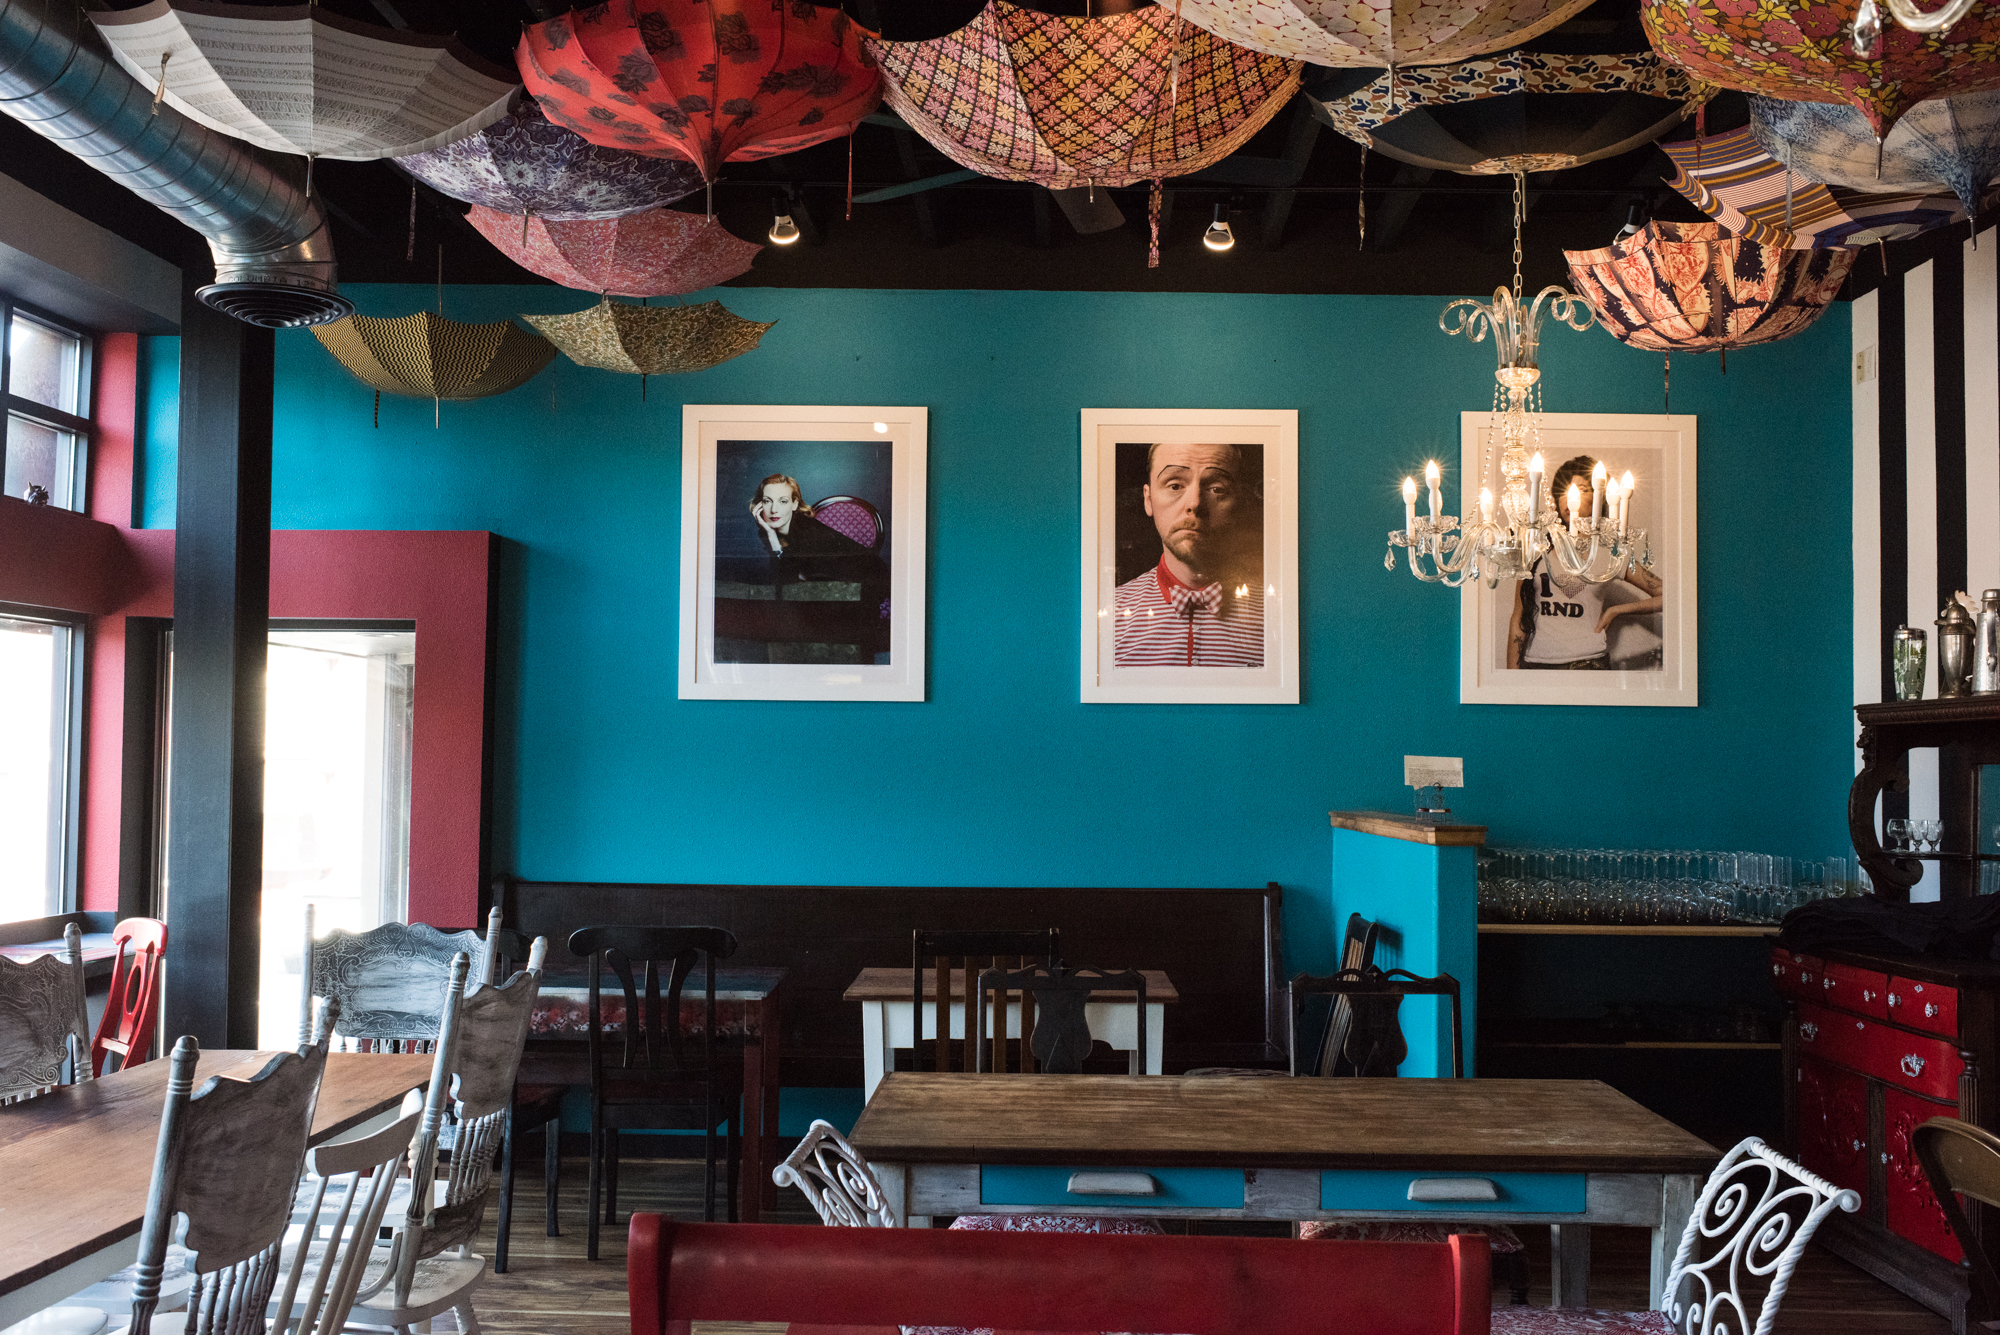 Take A Look Inside The Feisty Lamb, Now Open In Goose Hollow